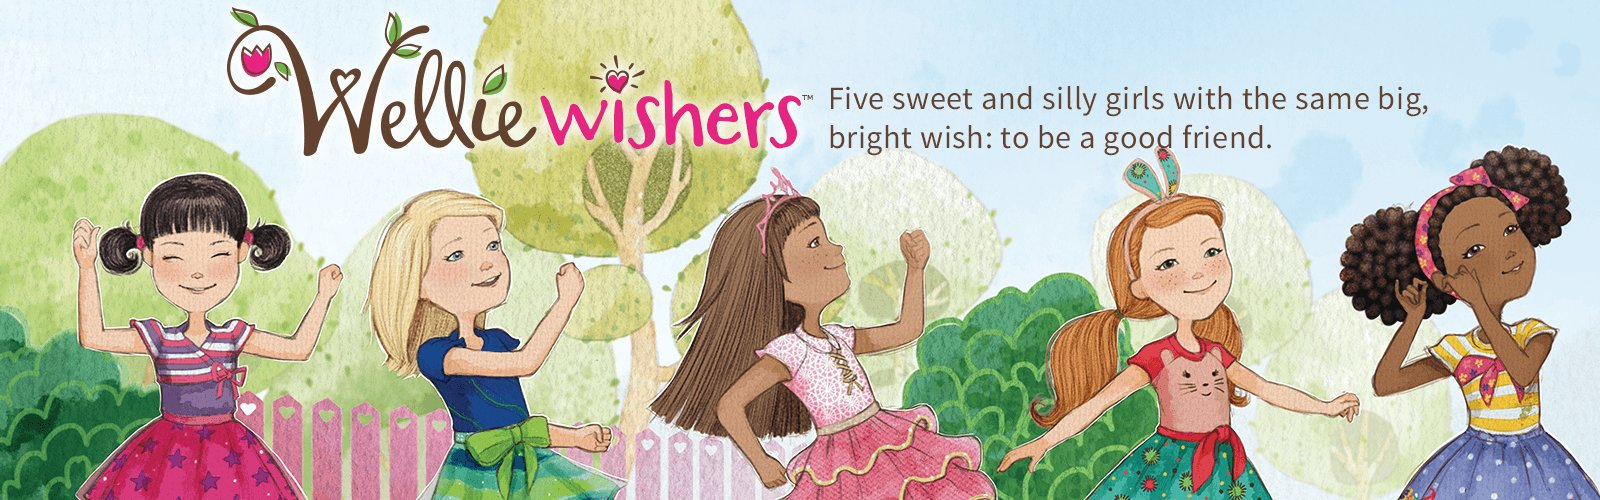 WellieWishers™. Five sweet and silly girls with the same big, bright wish: to be a good friend.